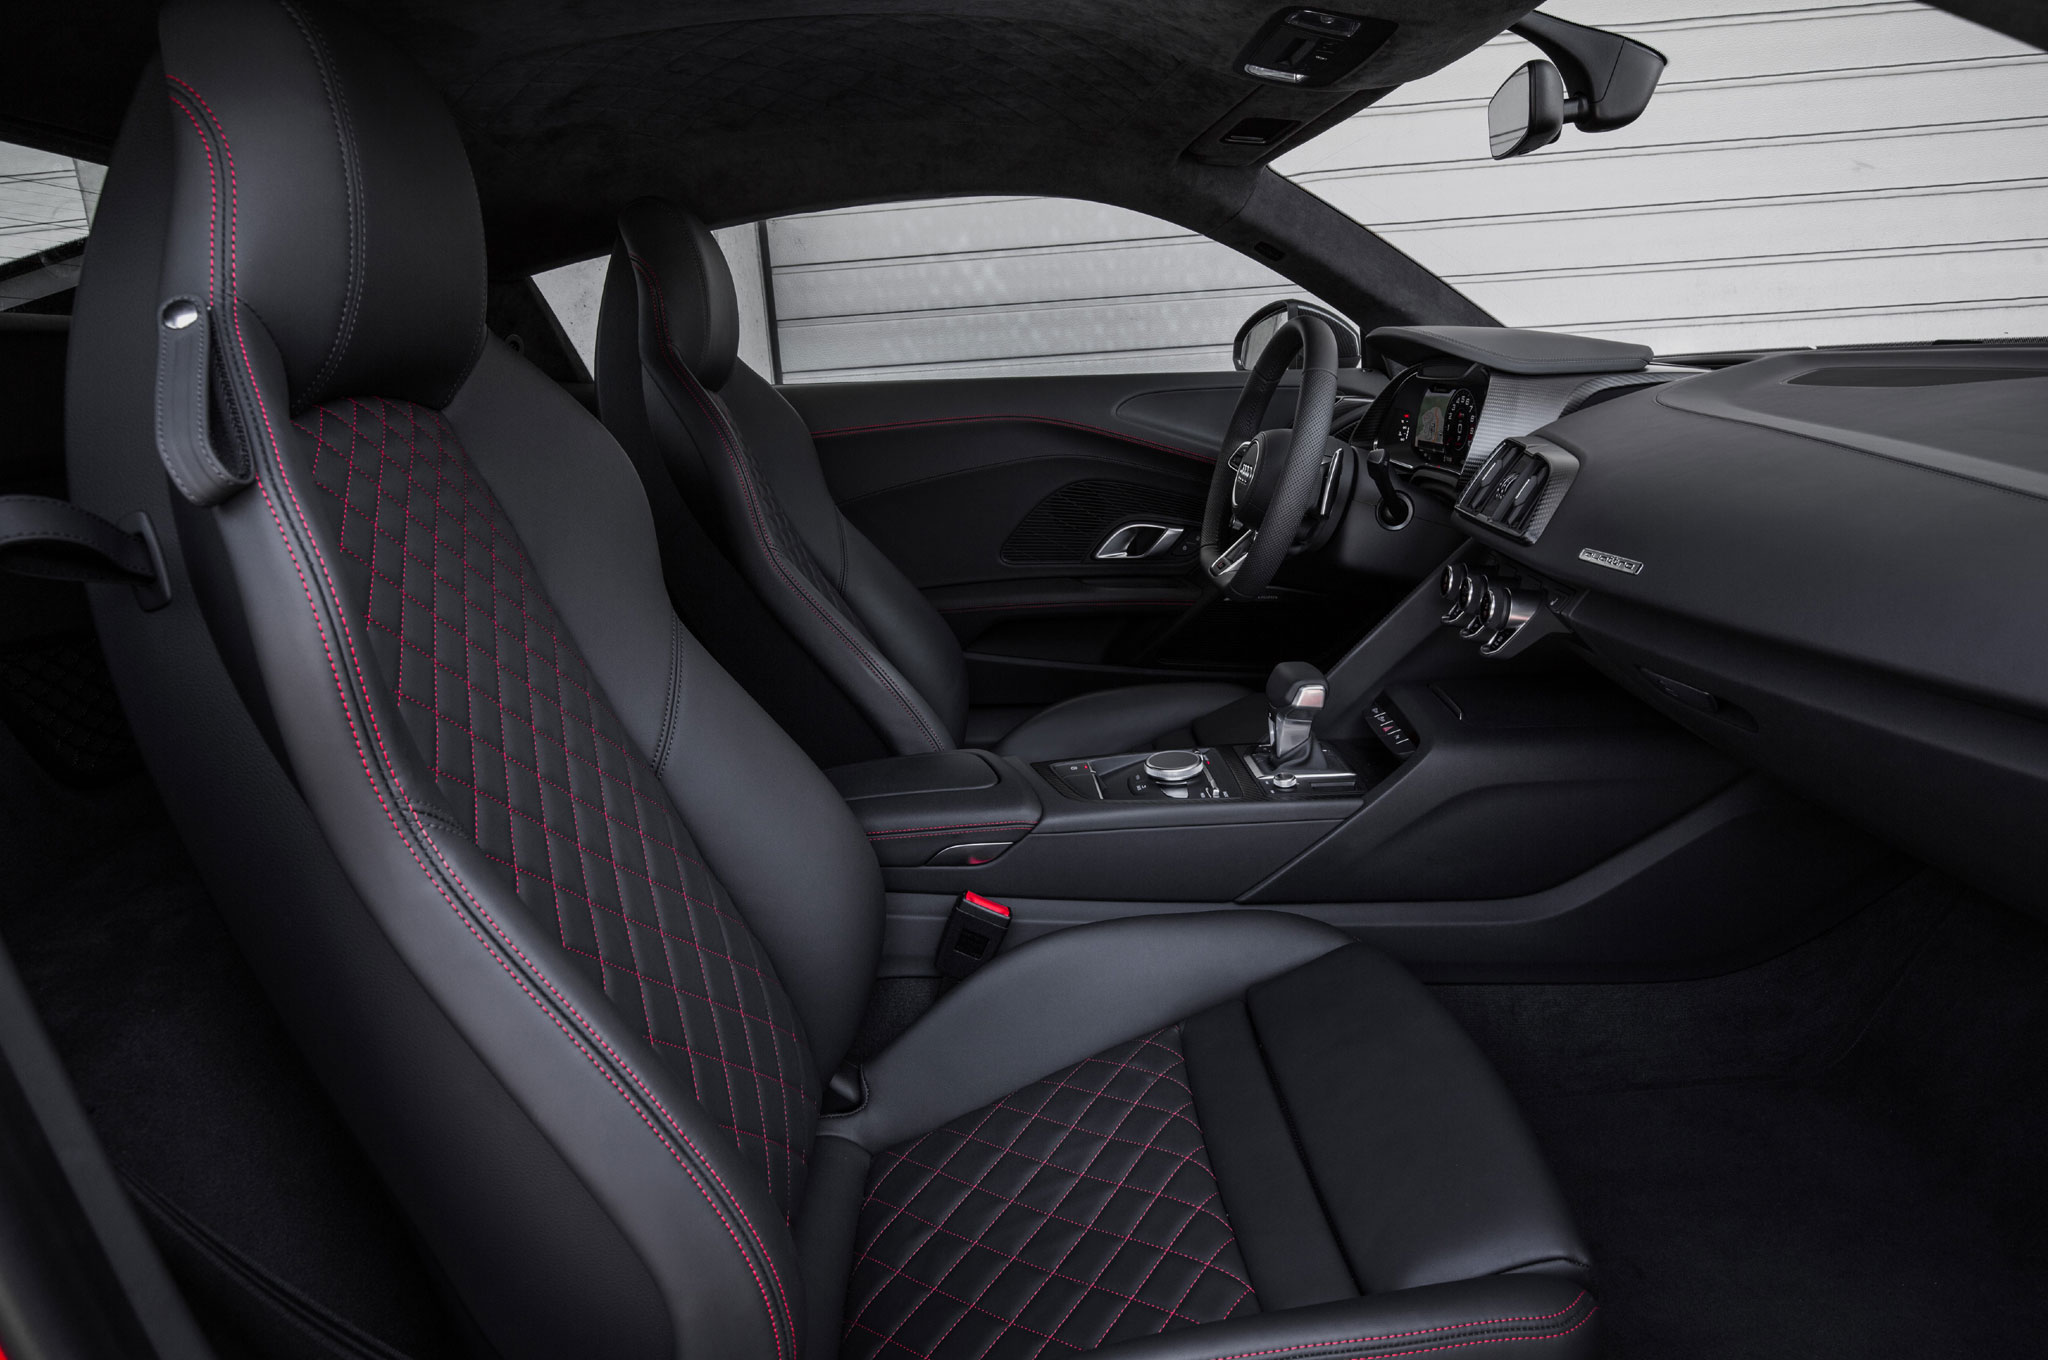 audi r8 matte black interior. 2017 audi r8 v10 plus cabin 03 matte black interior